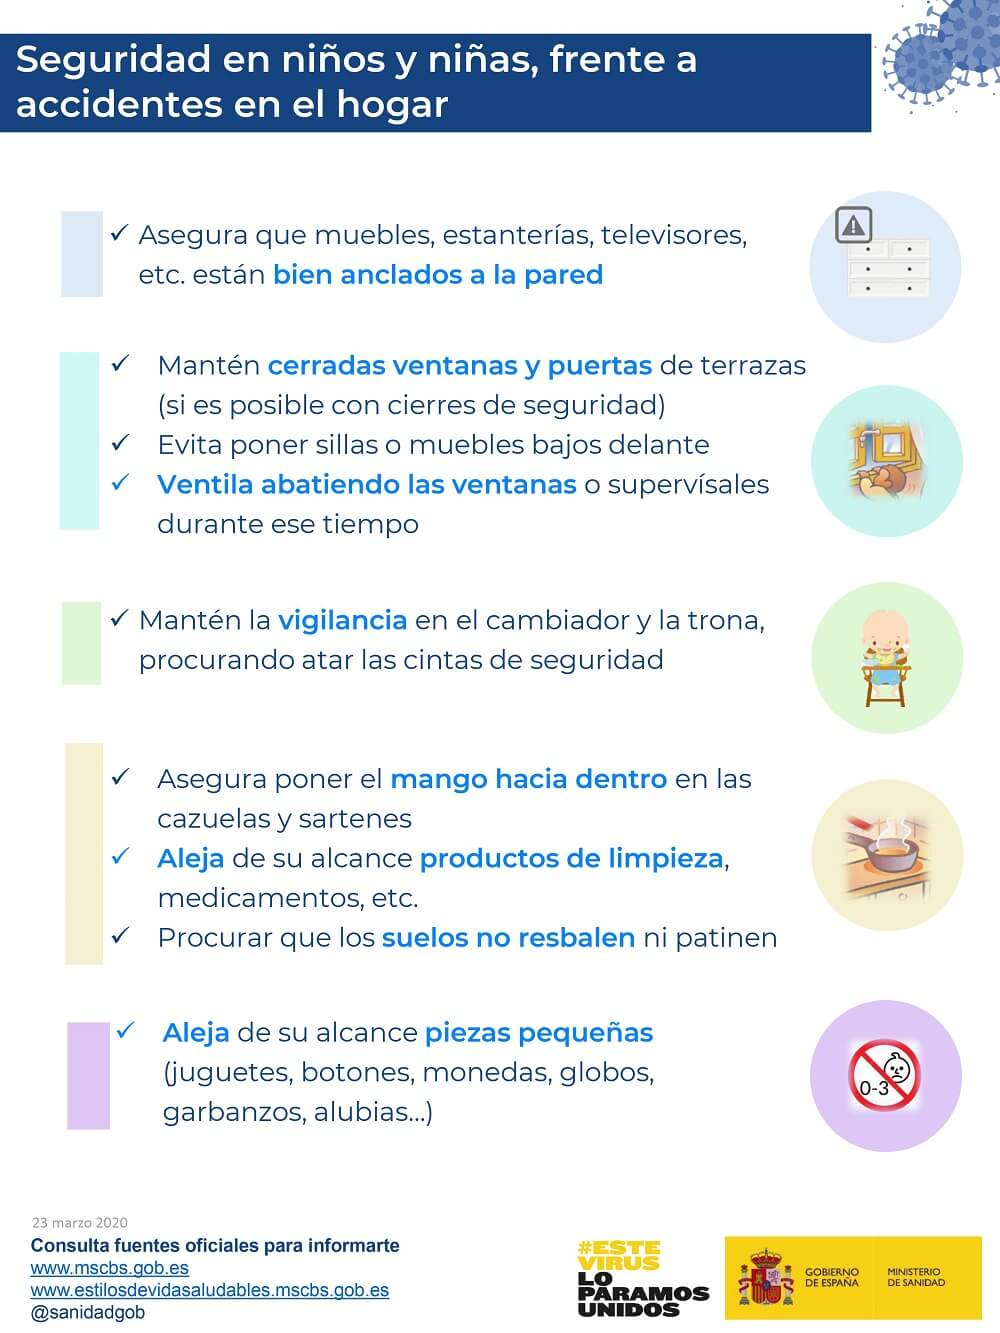 COVID19 prevencion accidentes ninos